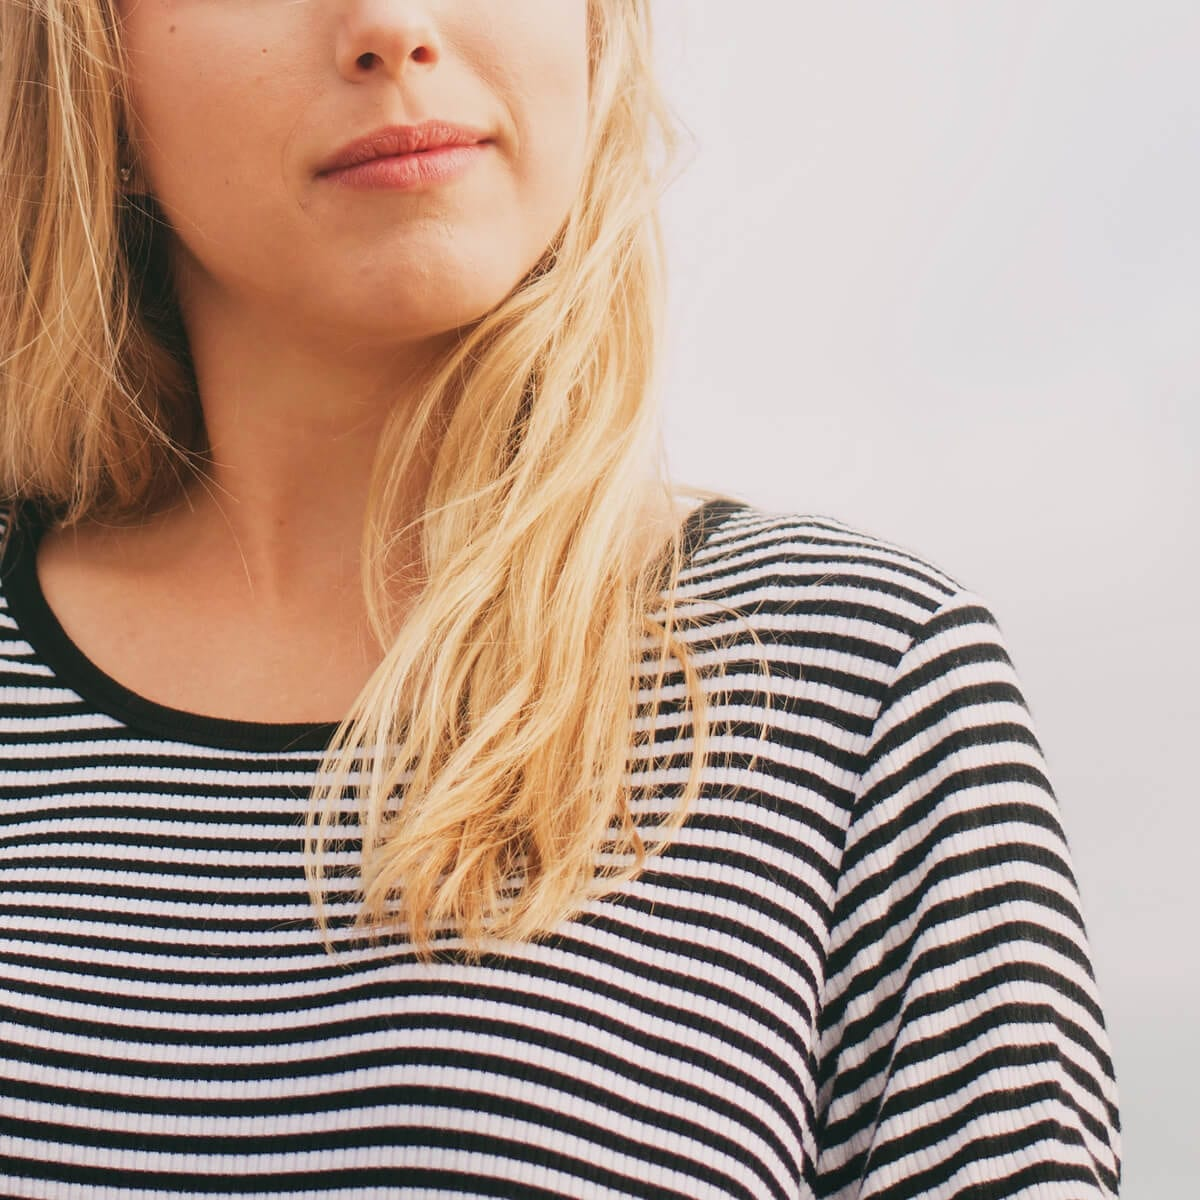 blonde woman in a black and white striped shirt